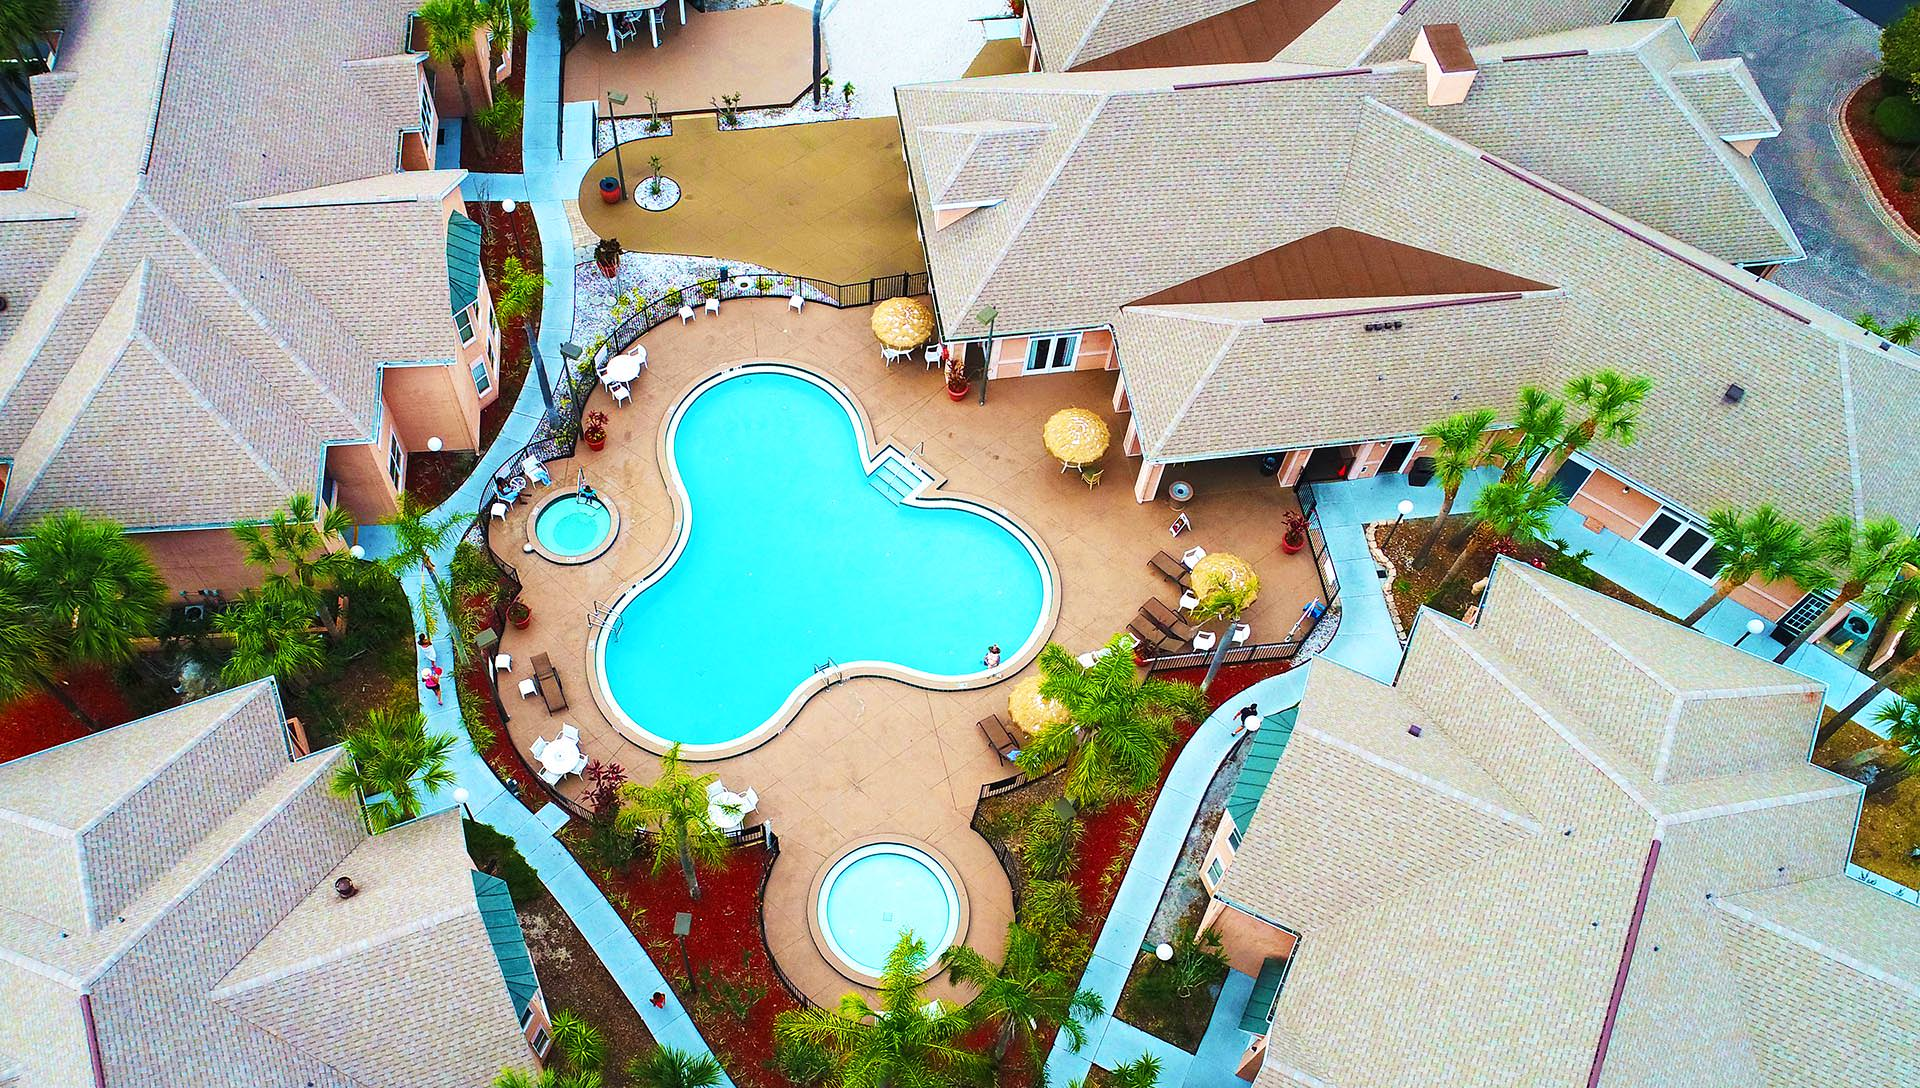 areal-Disney-Condo-with-Pool-just-outside-door - disney